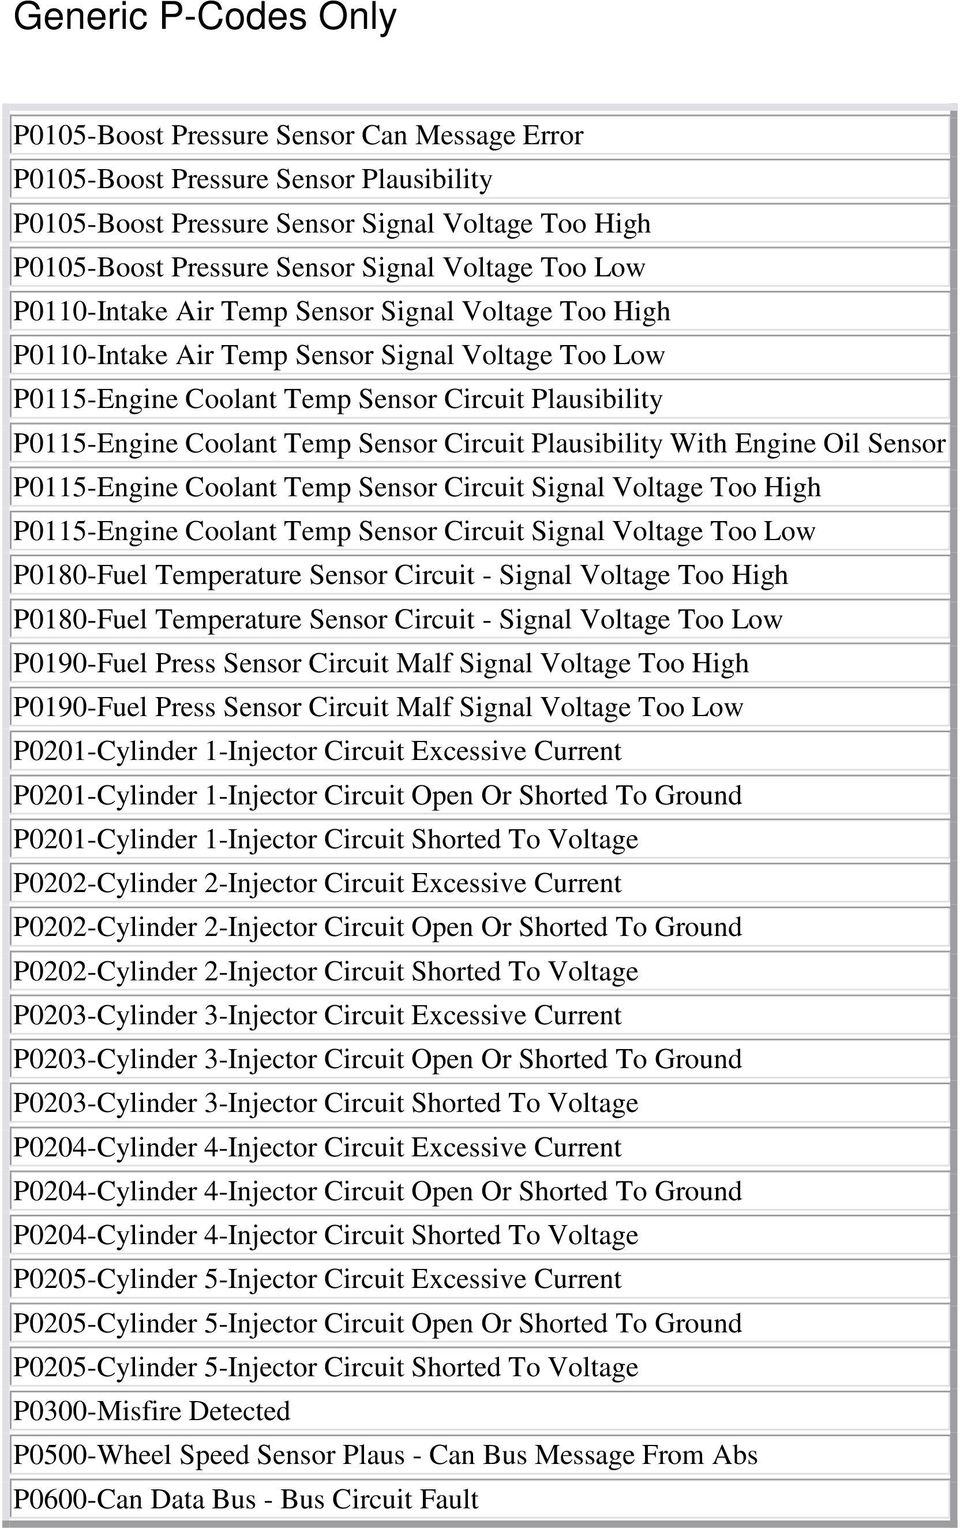 Toyota Sienna Service Manual: Intake Air Temperature Sensor Gradient Too High